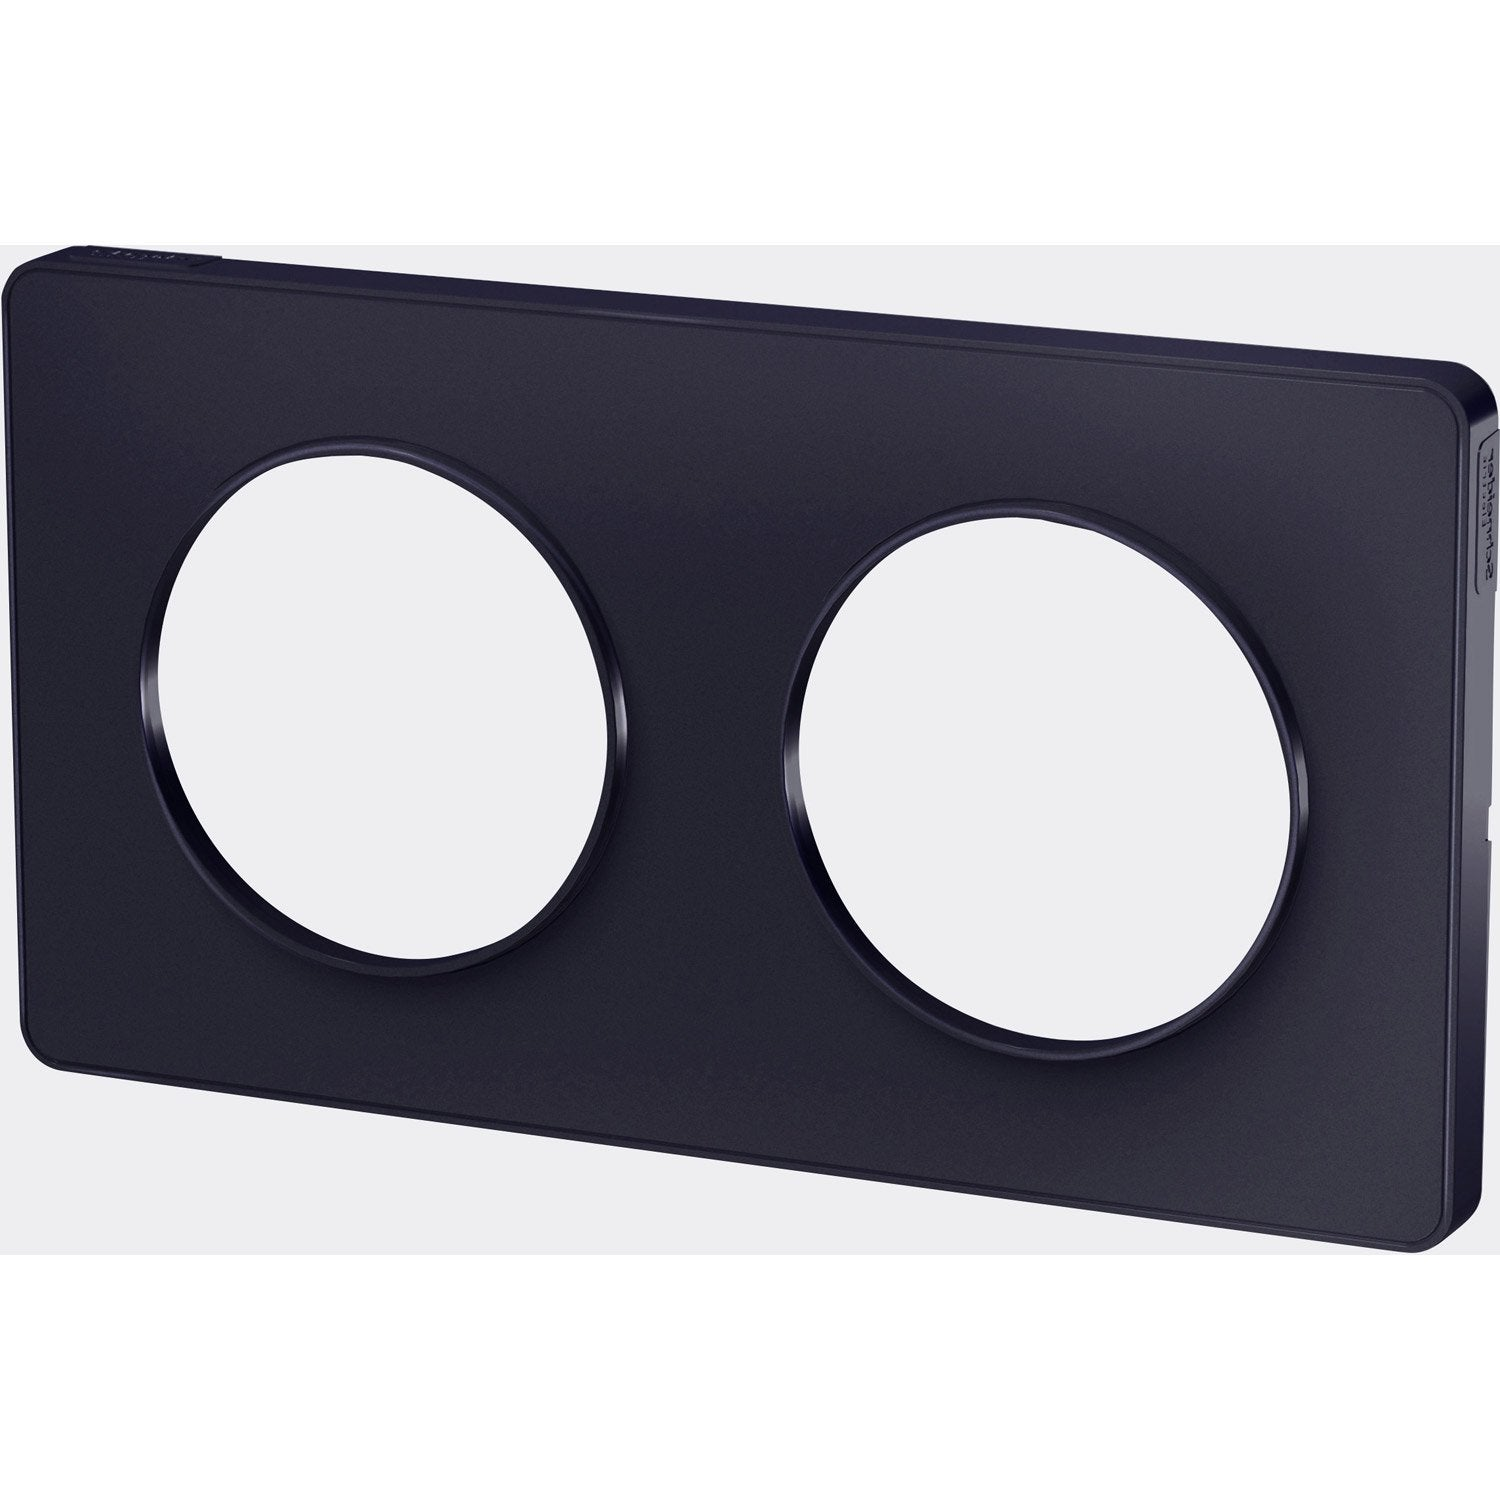 Plaque double Odace, SCHNEIDER ELECTRIC, anthracite